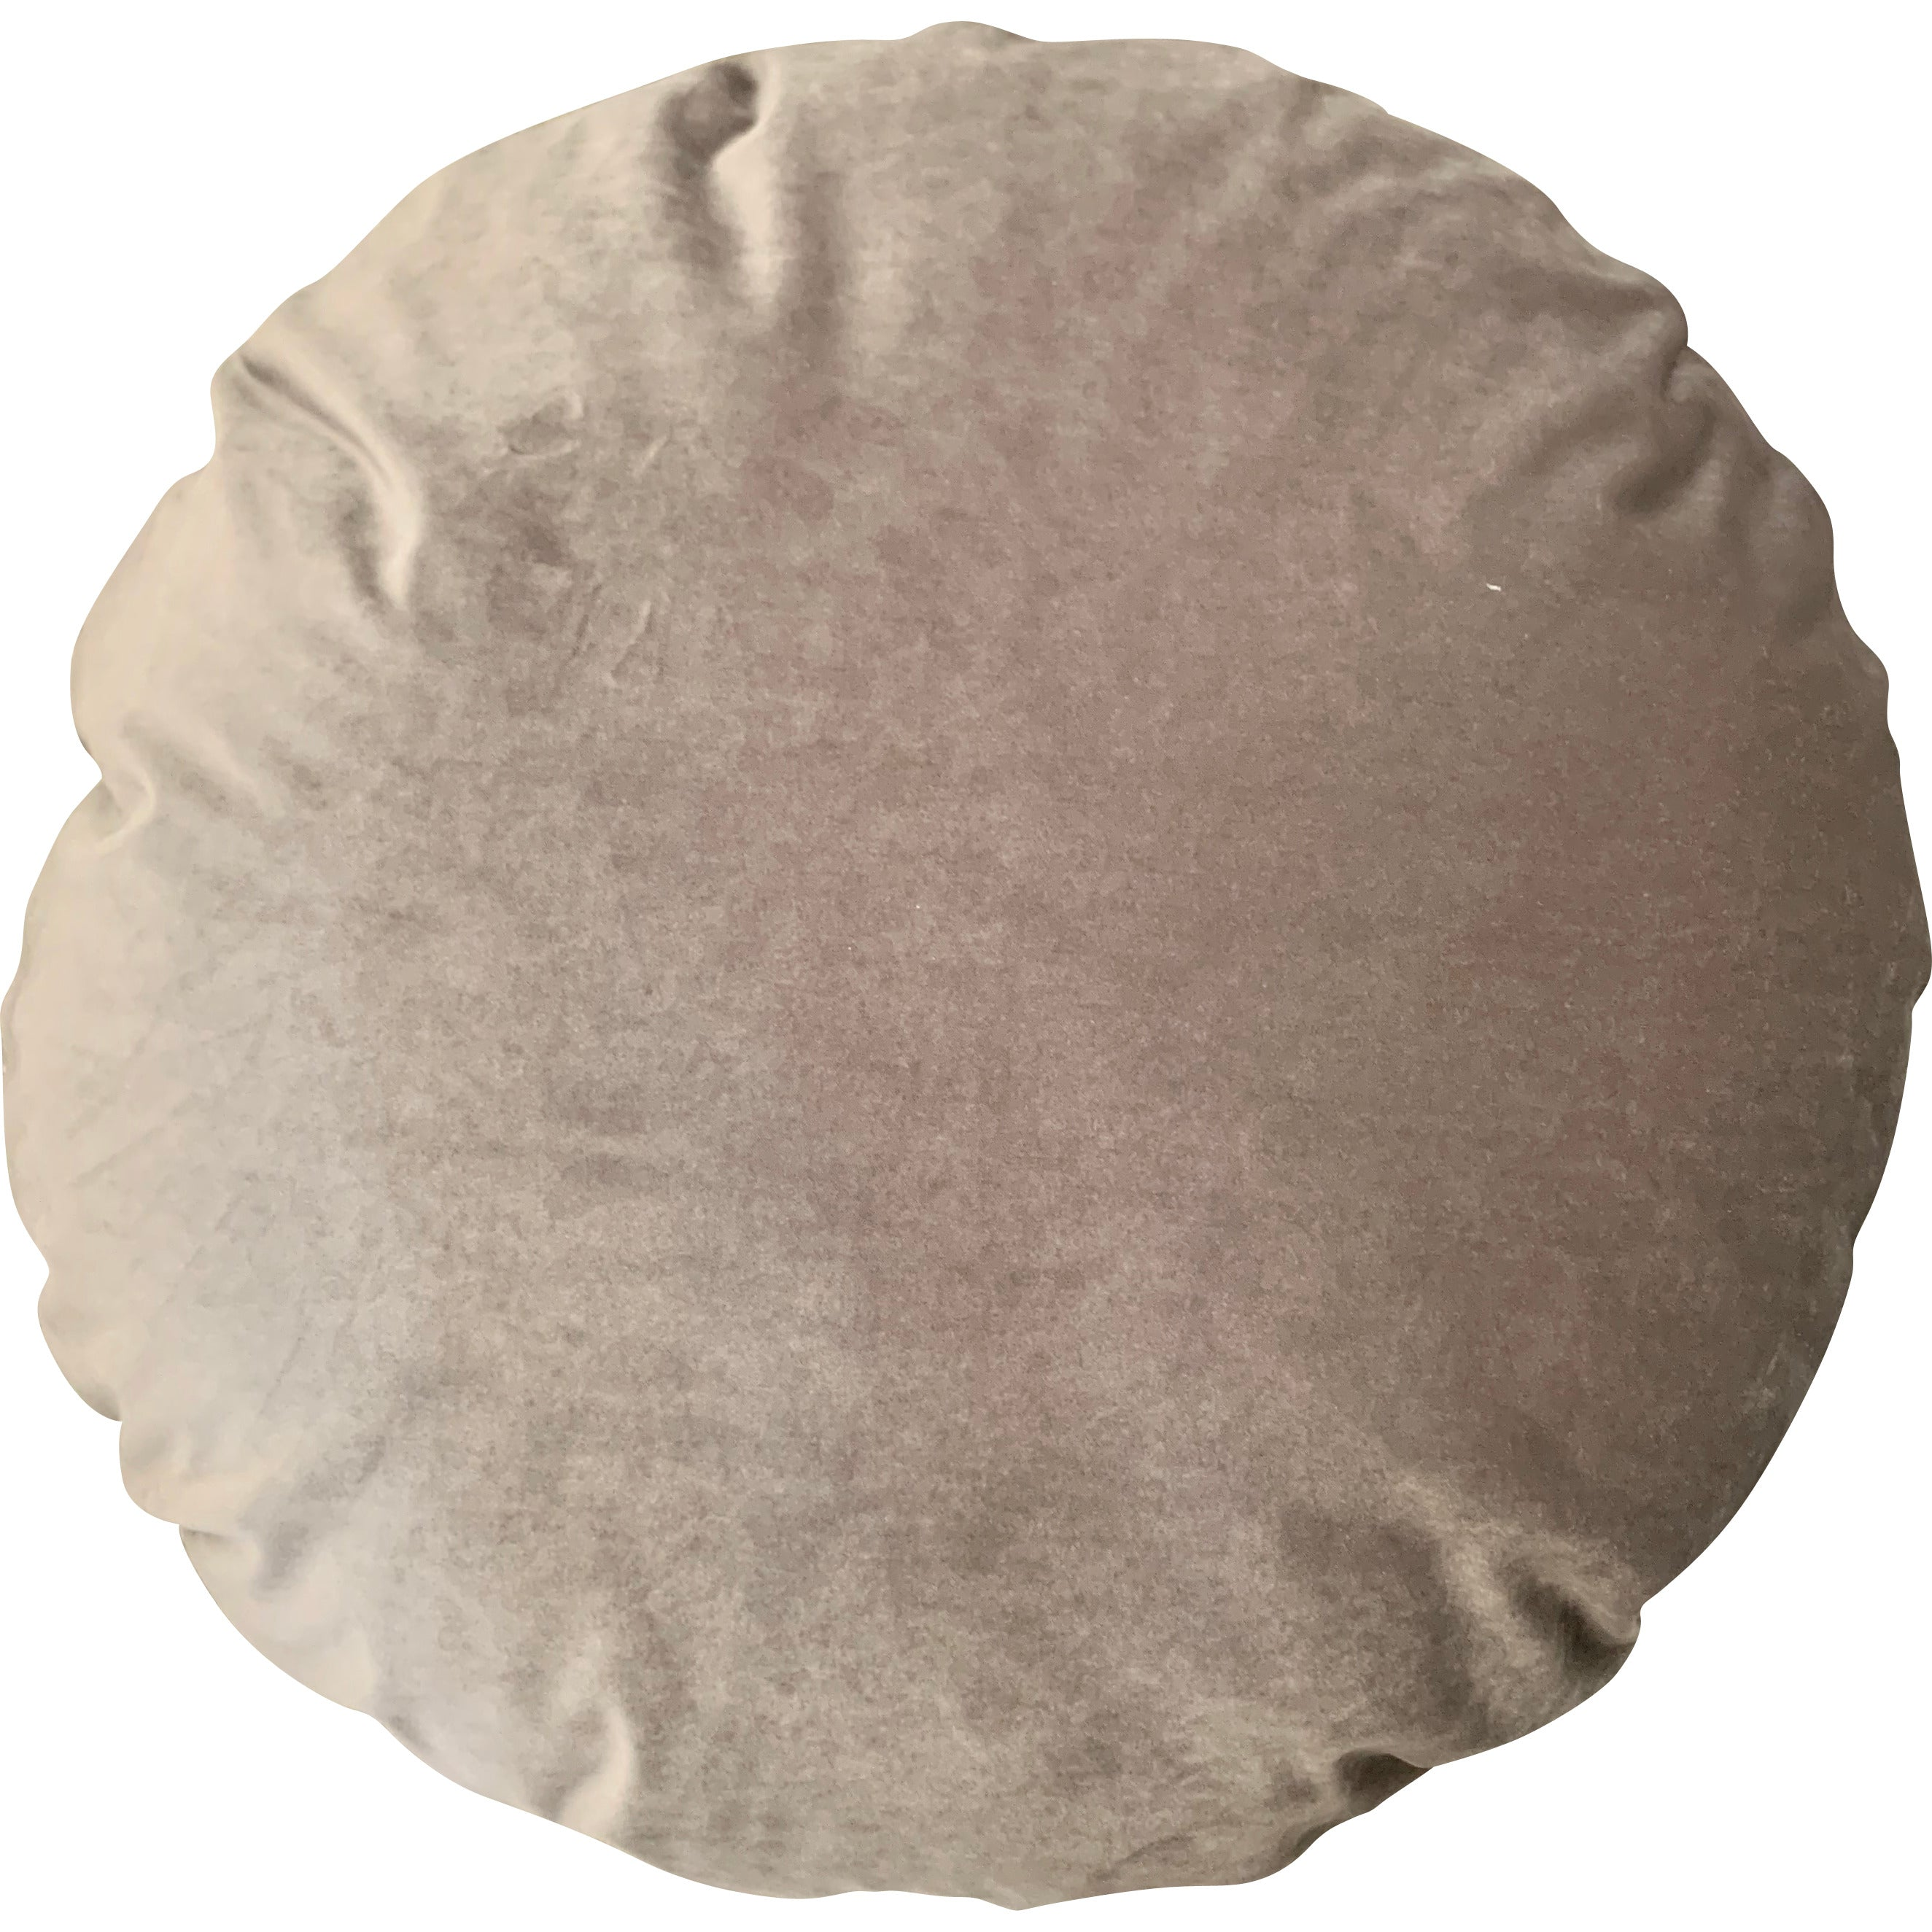 Bed and Philosophy Shaved Velvet and Linen Round Pillow